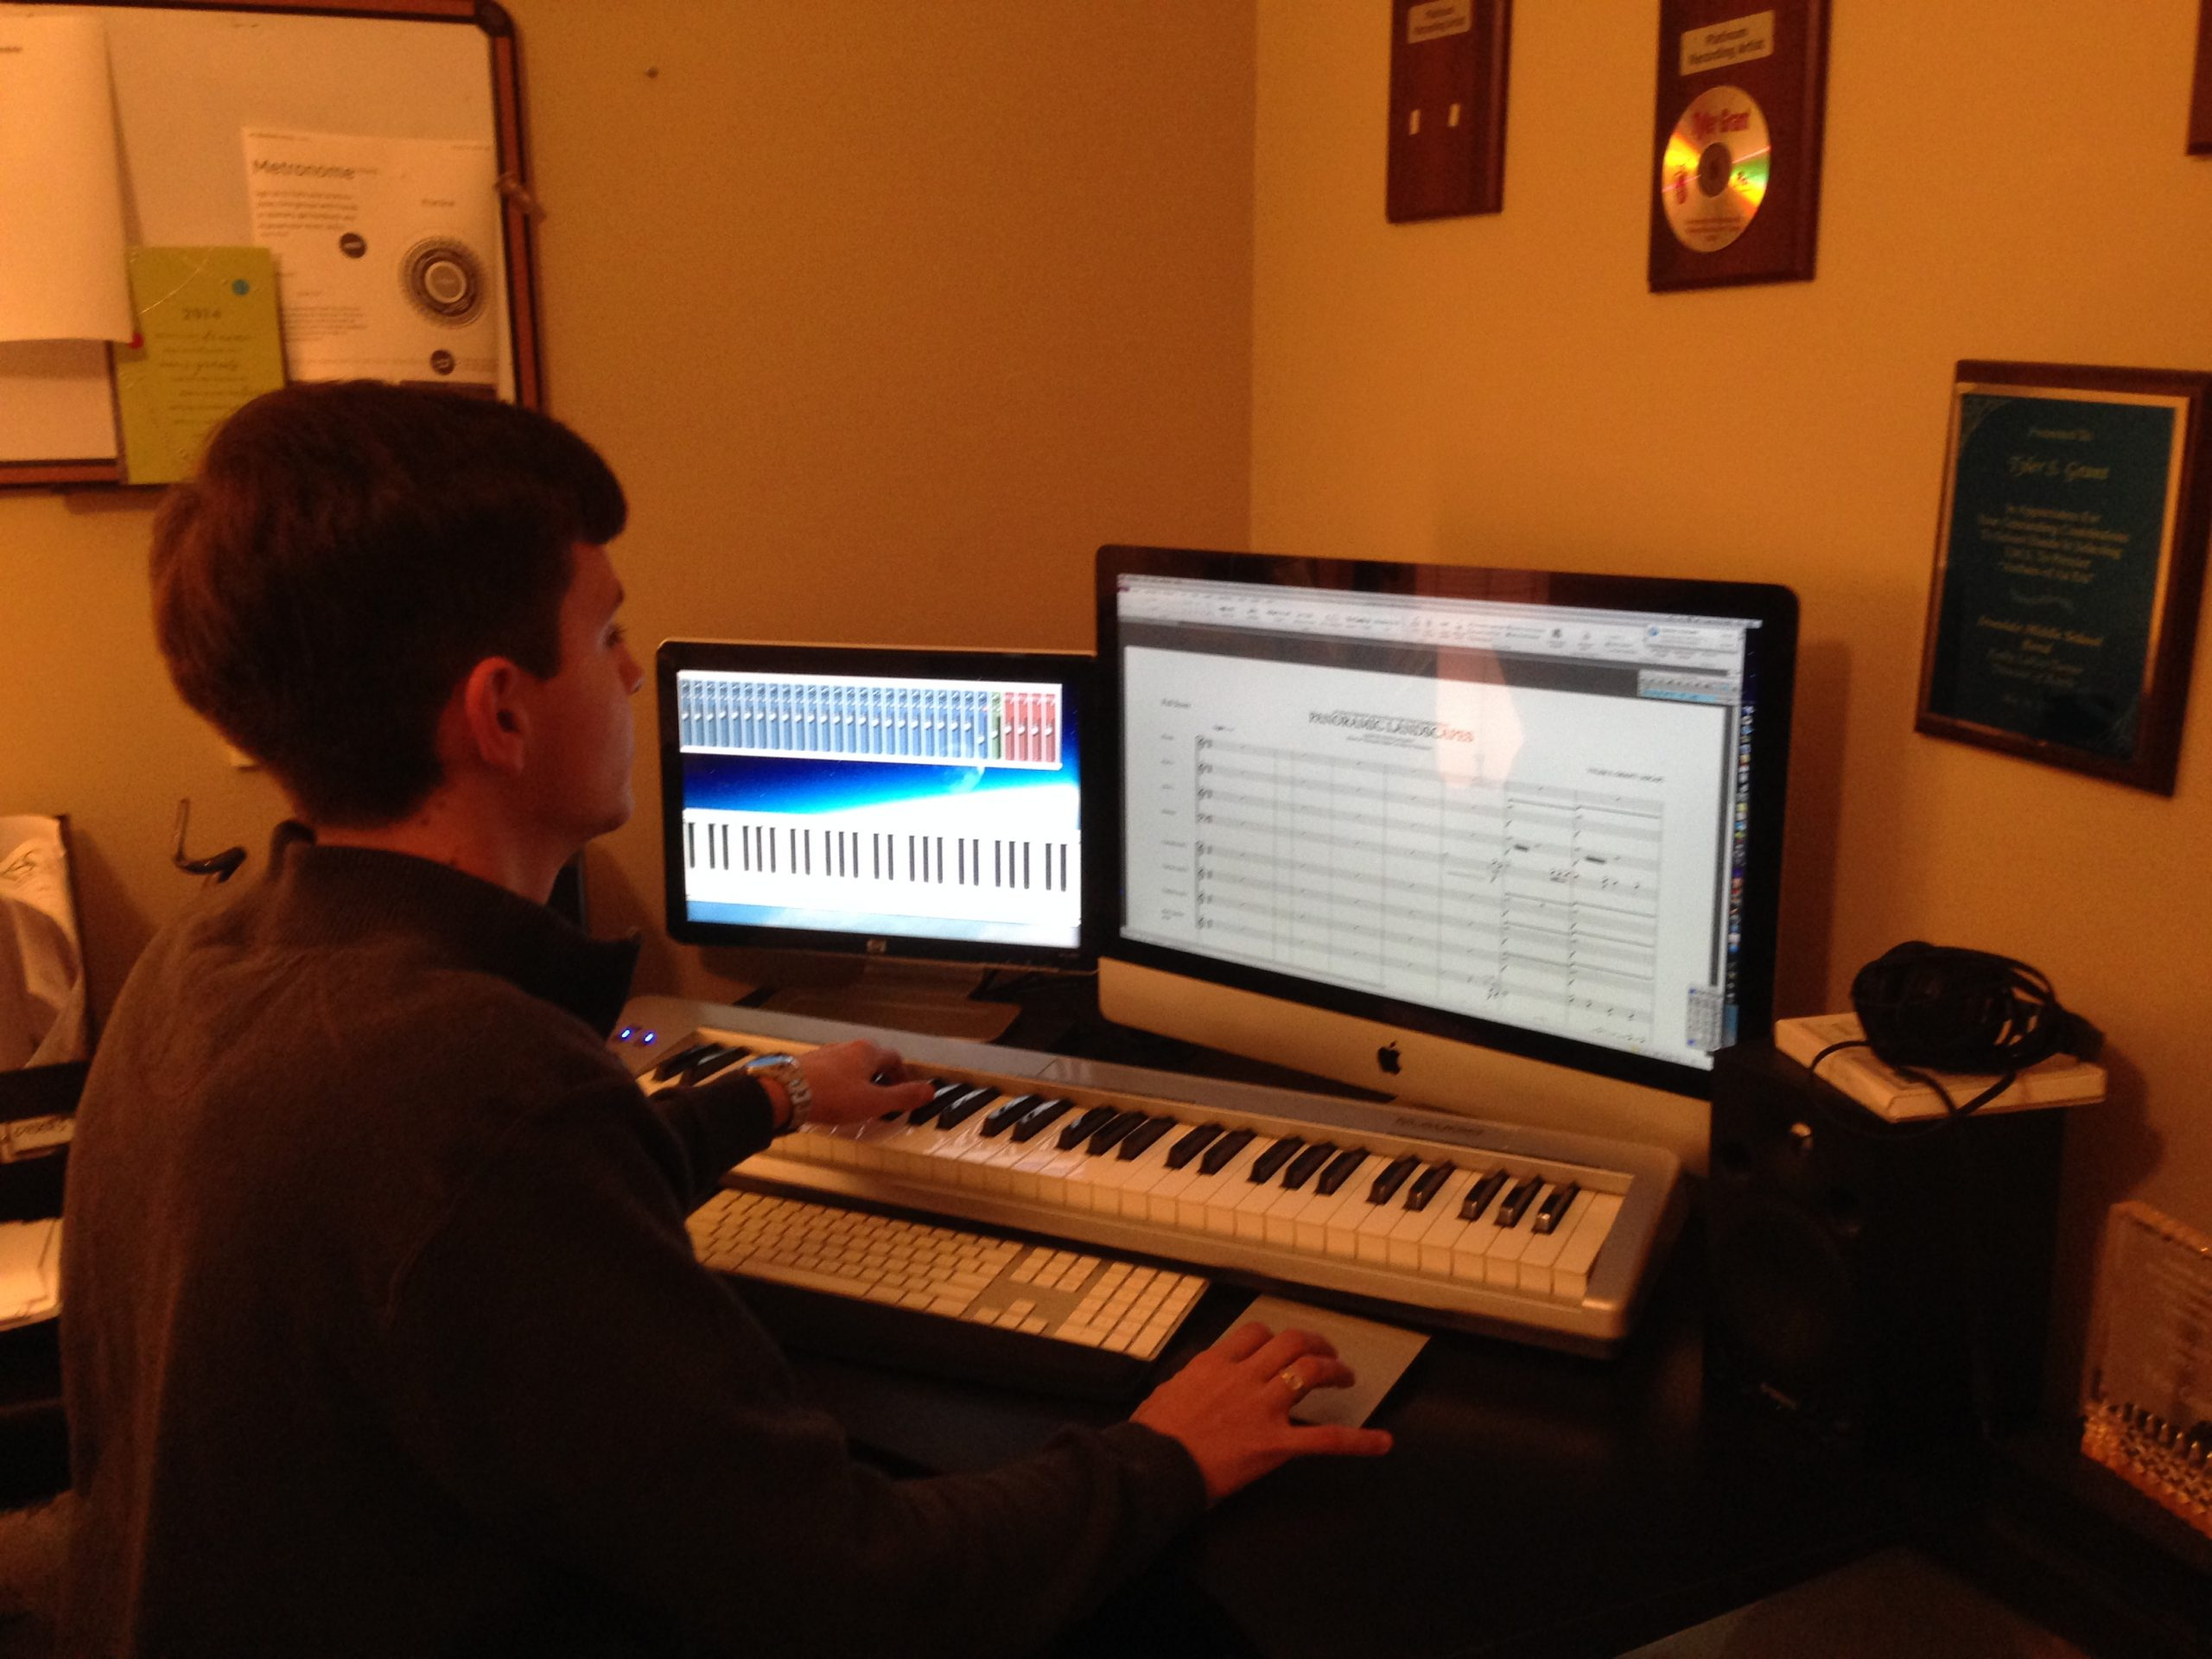 Grant, age 18, at work station.